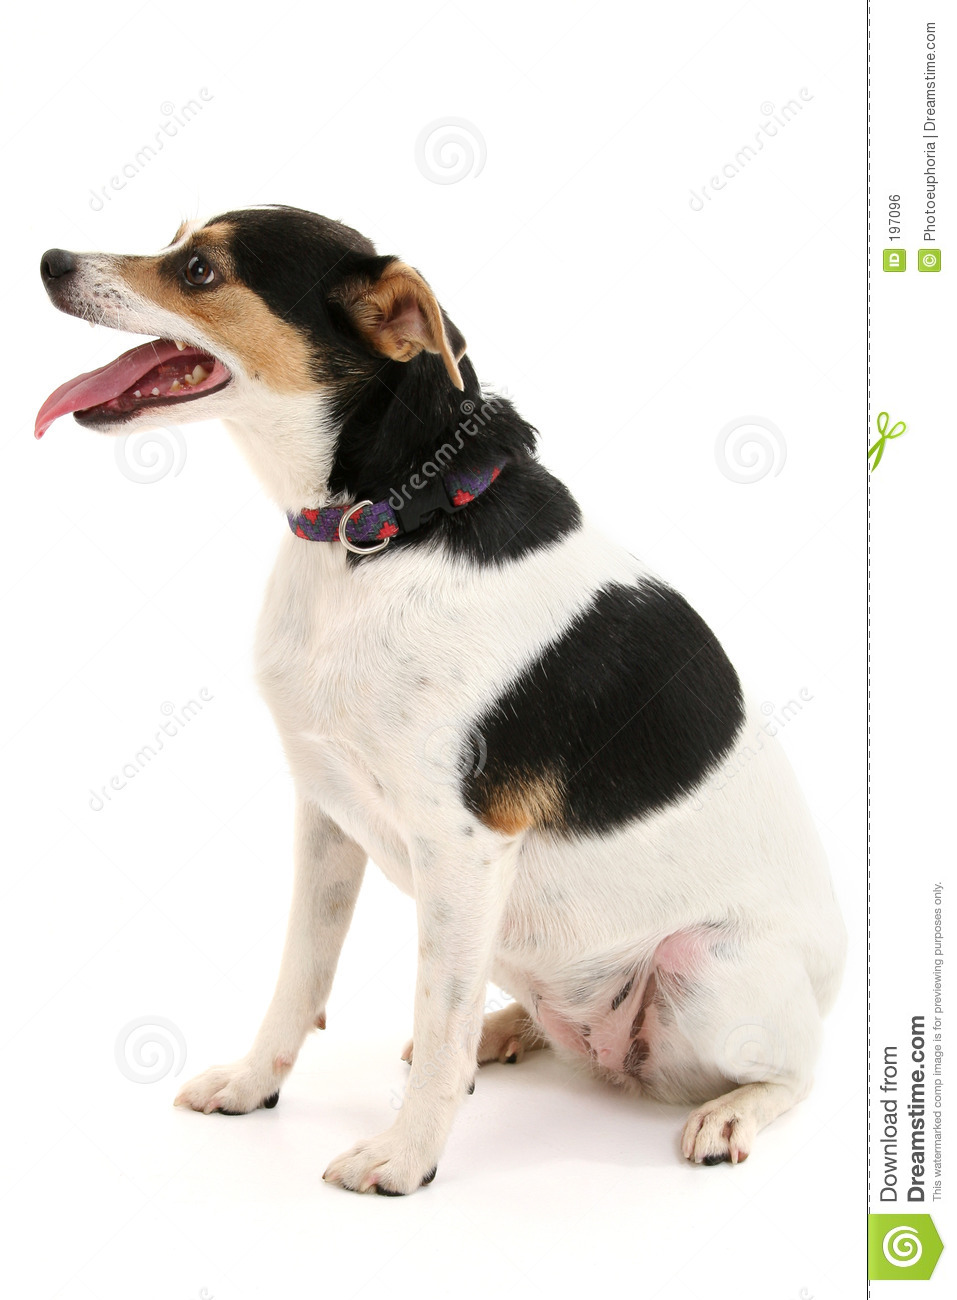 Cute Little Dog Sitting With Mouth Open Stock Photo